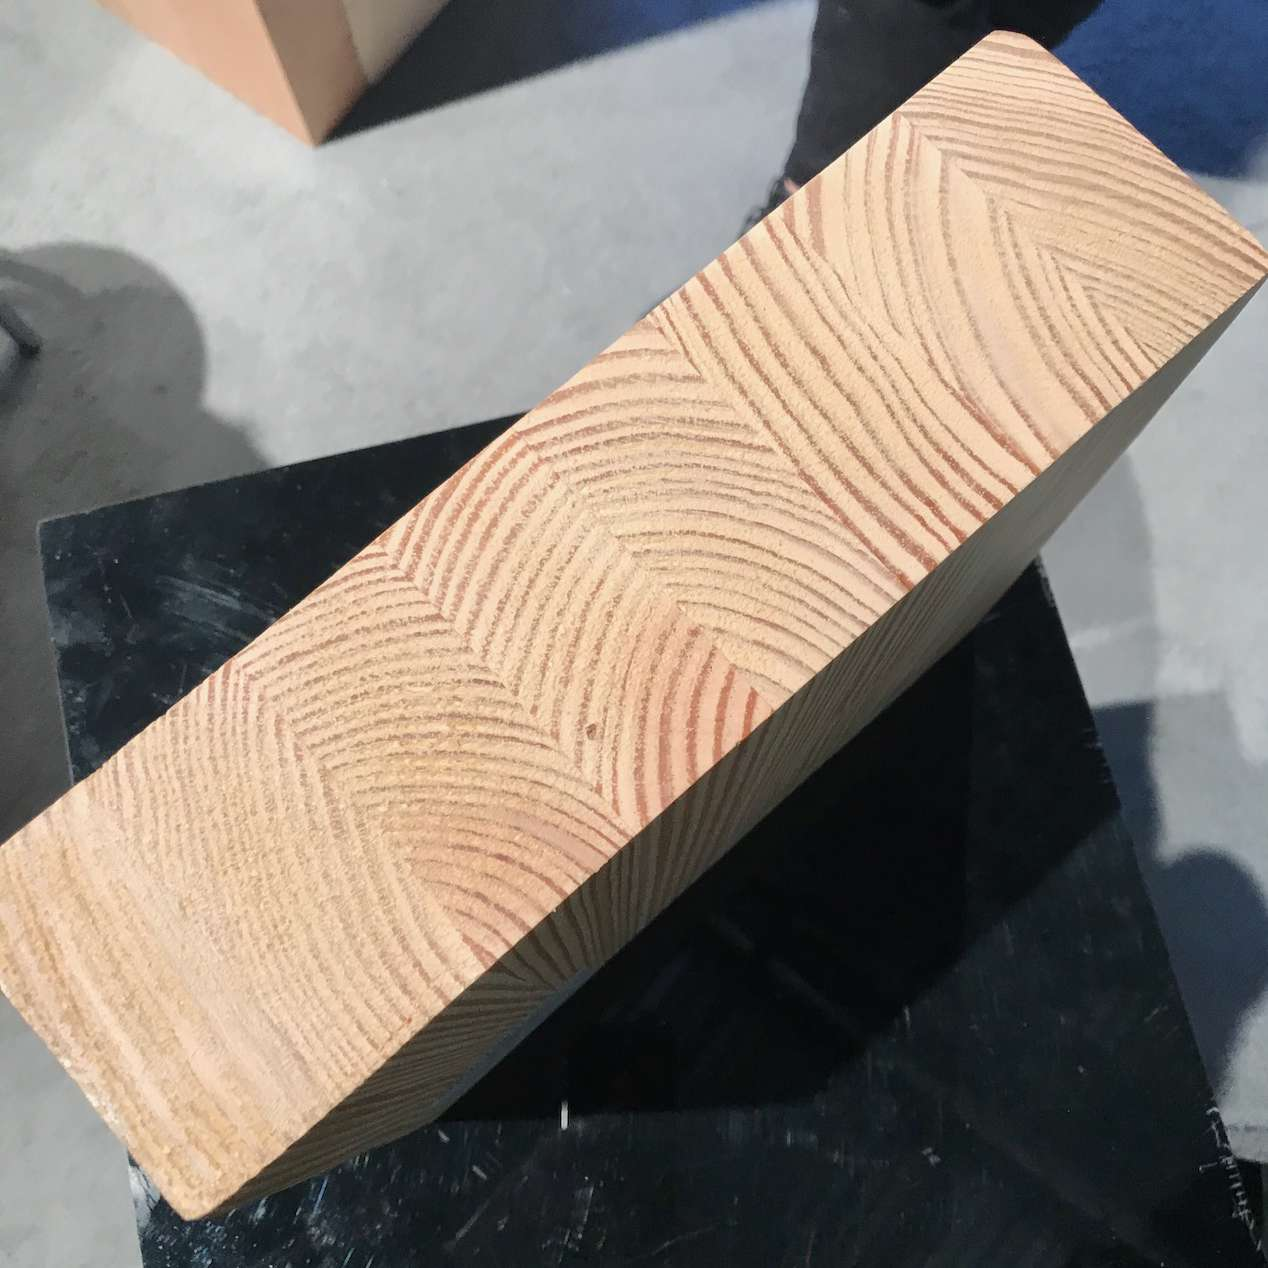 Block of pale striped wood